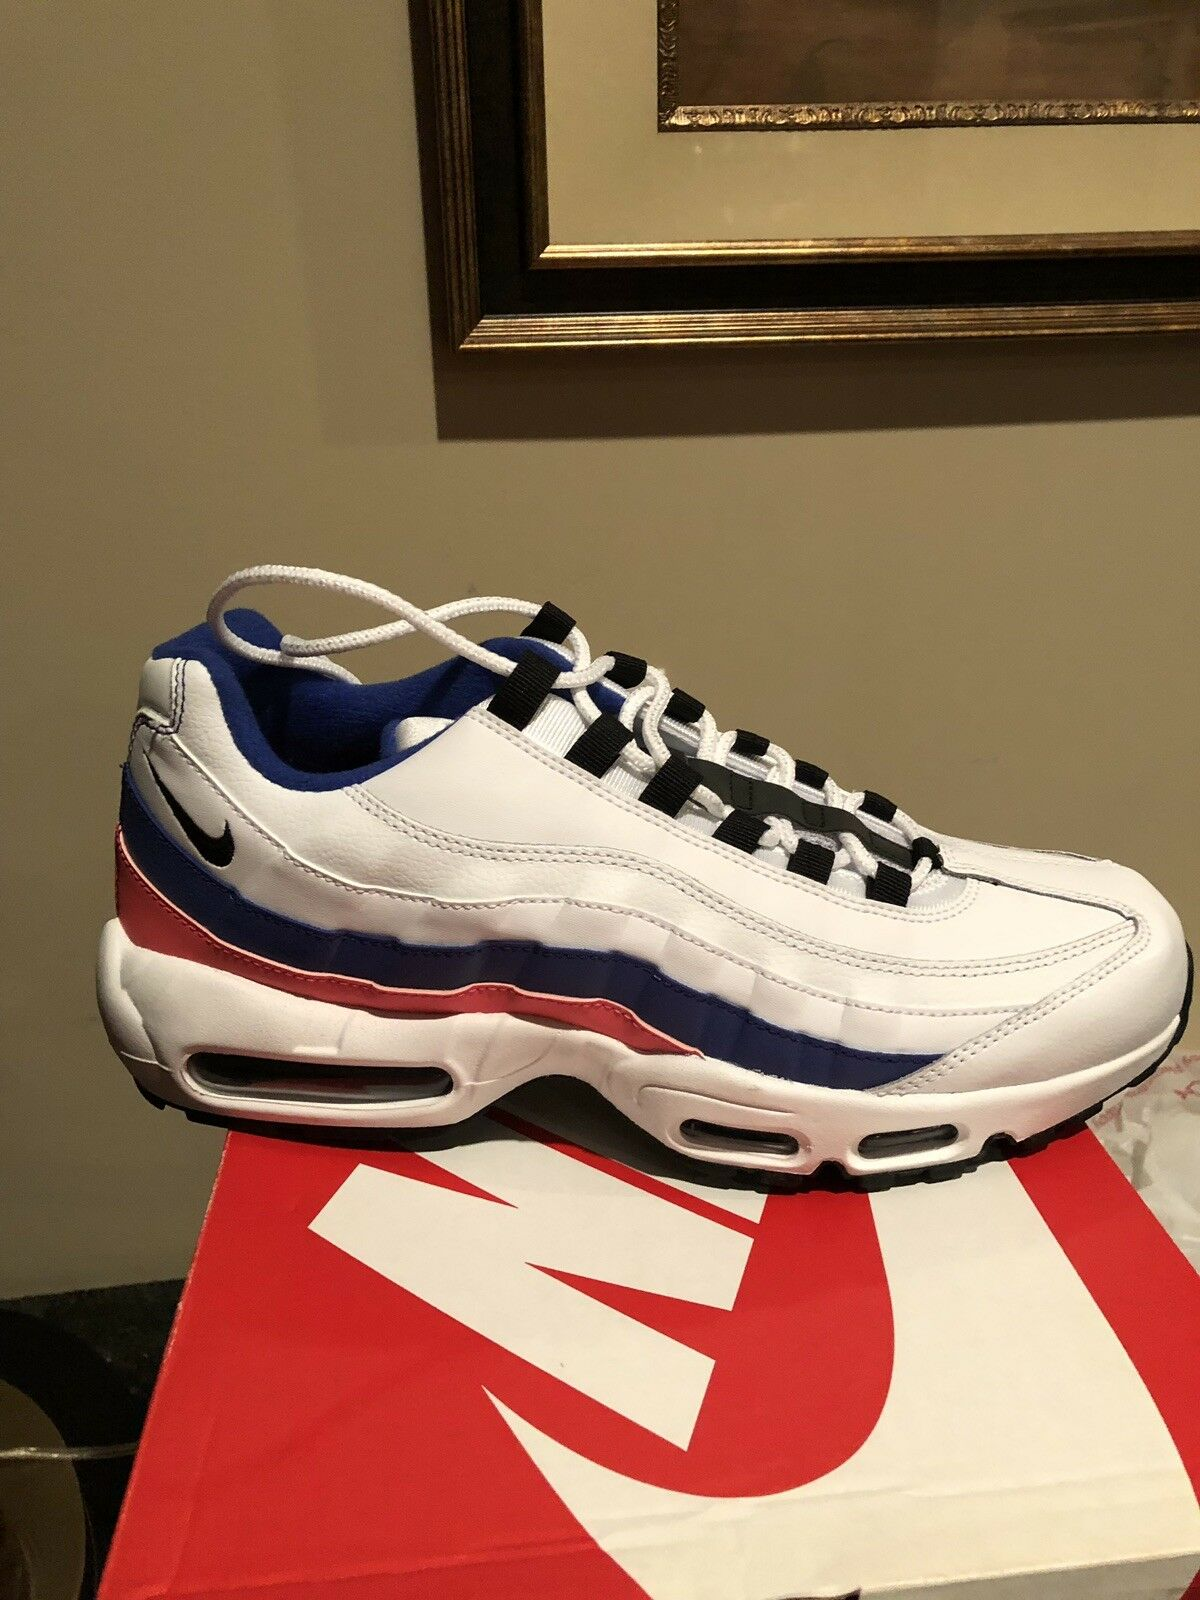 Nike Air Max 95 Essential Ultramarine Size 12 White Black Solar Red 749766-106